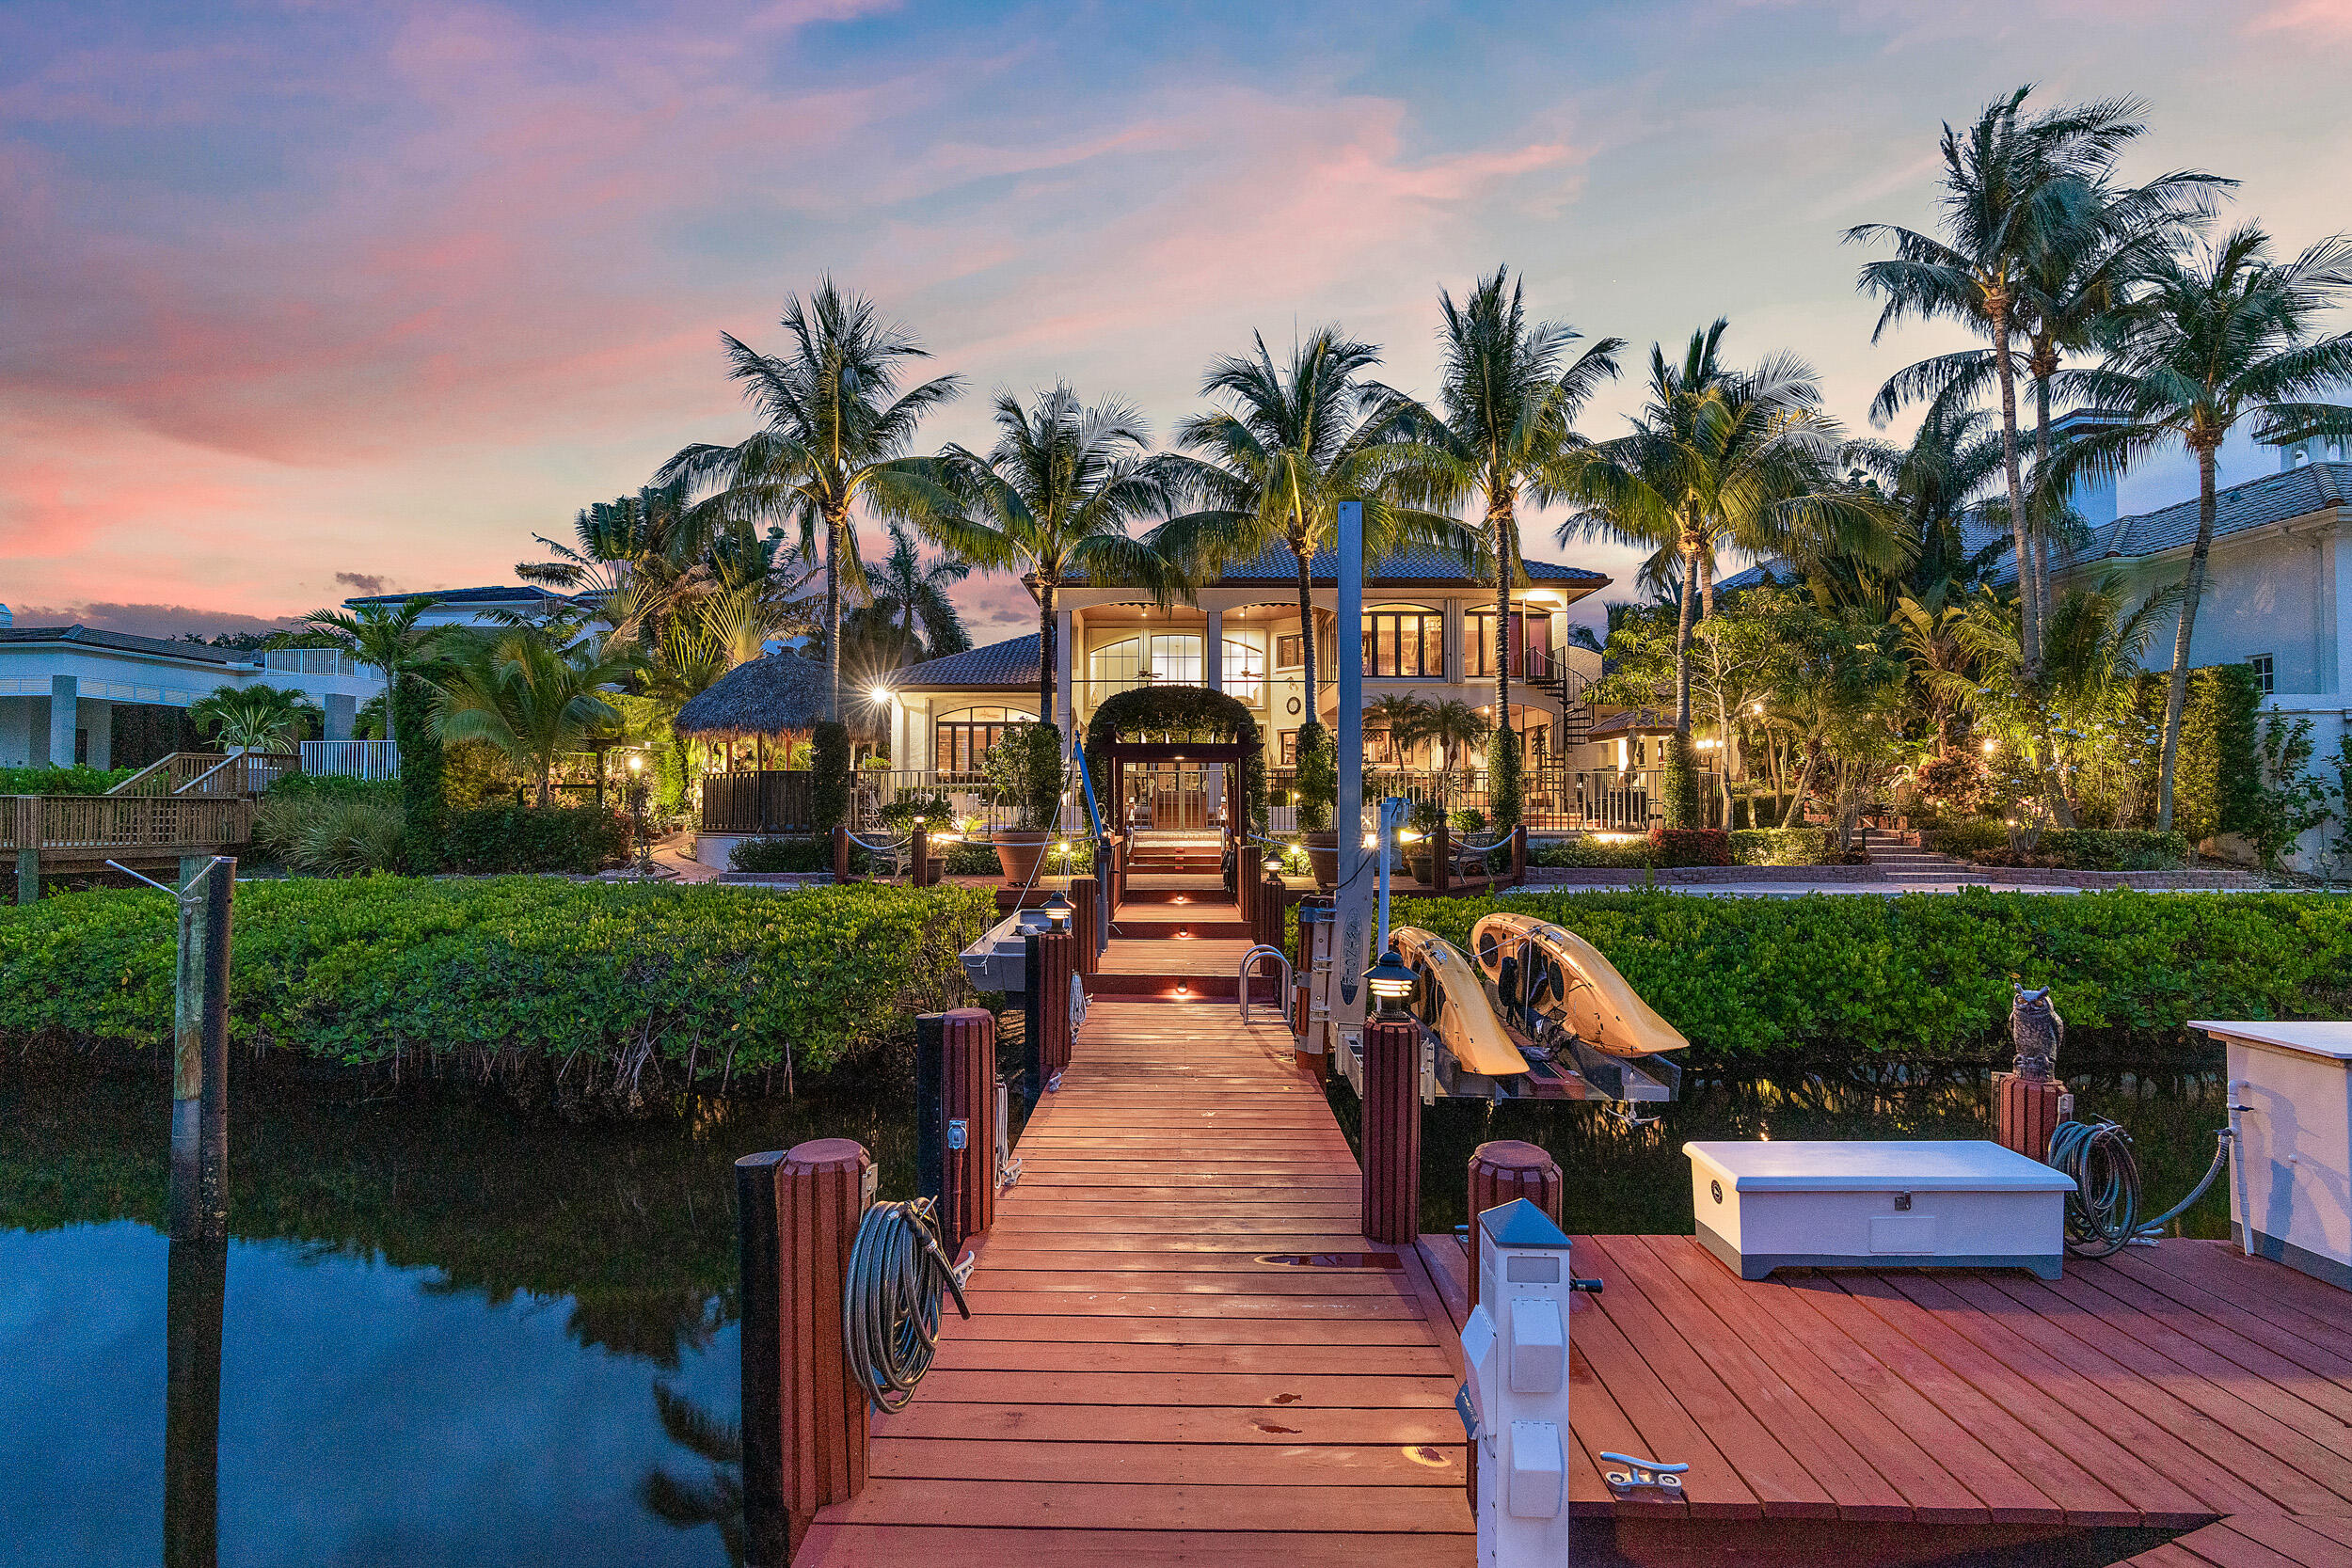 This Waterfront Estate is perfect for the Buyer that wants it all!  Located on a private island street with waterfrontage that can accommodate a large vessel.  Easy access to the Intracoastal and it is close to all the 5 star amenities that Admirals Cove has to offer.   The custom built, Tuscan inspired home, is over 5,800 square feet with a perfect blend of formal and casual living.   Lush landscaping, custom wood work, 5 bedrooms, one of which is a private guest apartment, screened in patio, dock for 2 boats with a 12,000 lb. lift and swing lift for jet skis or kayaks, 60 k generator, air conditioned 4 car plus golf cart garage and so much more!  This home is classic sophistication and timeless elegance at its best.